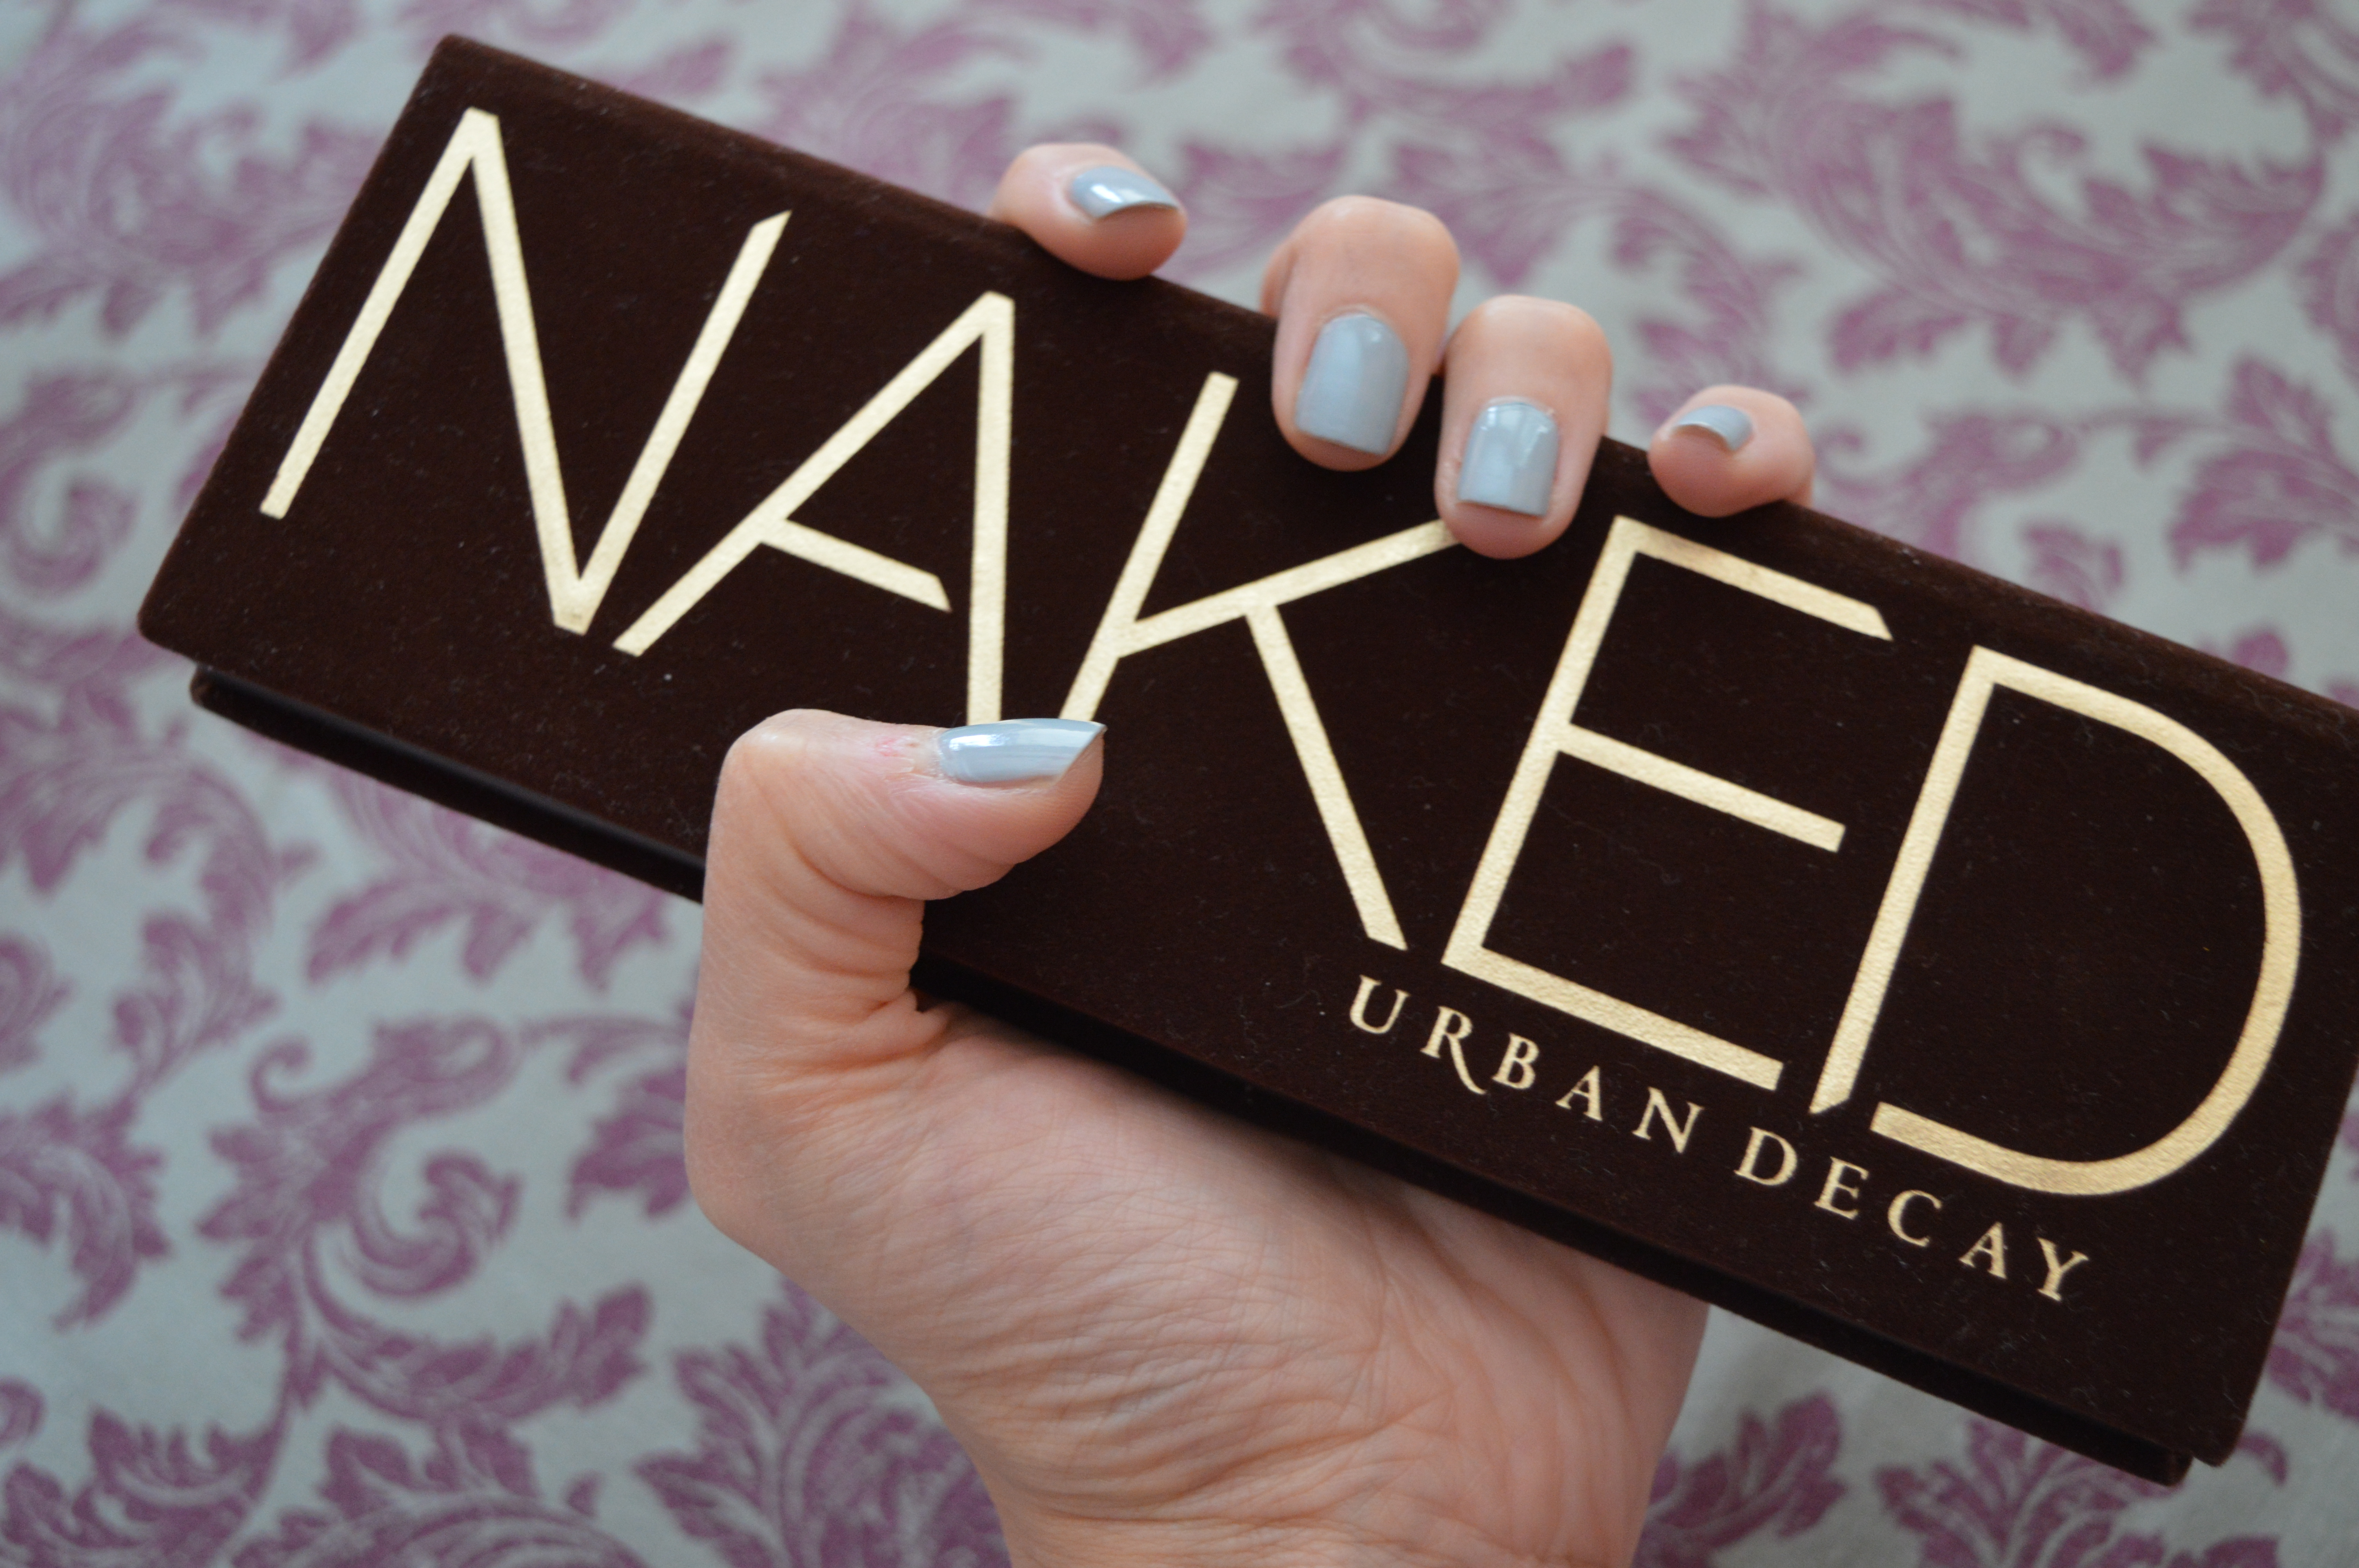 Review: Naked by Urban Decay